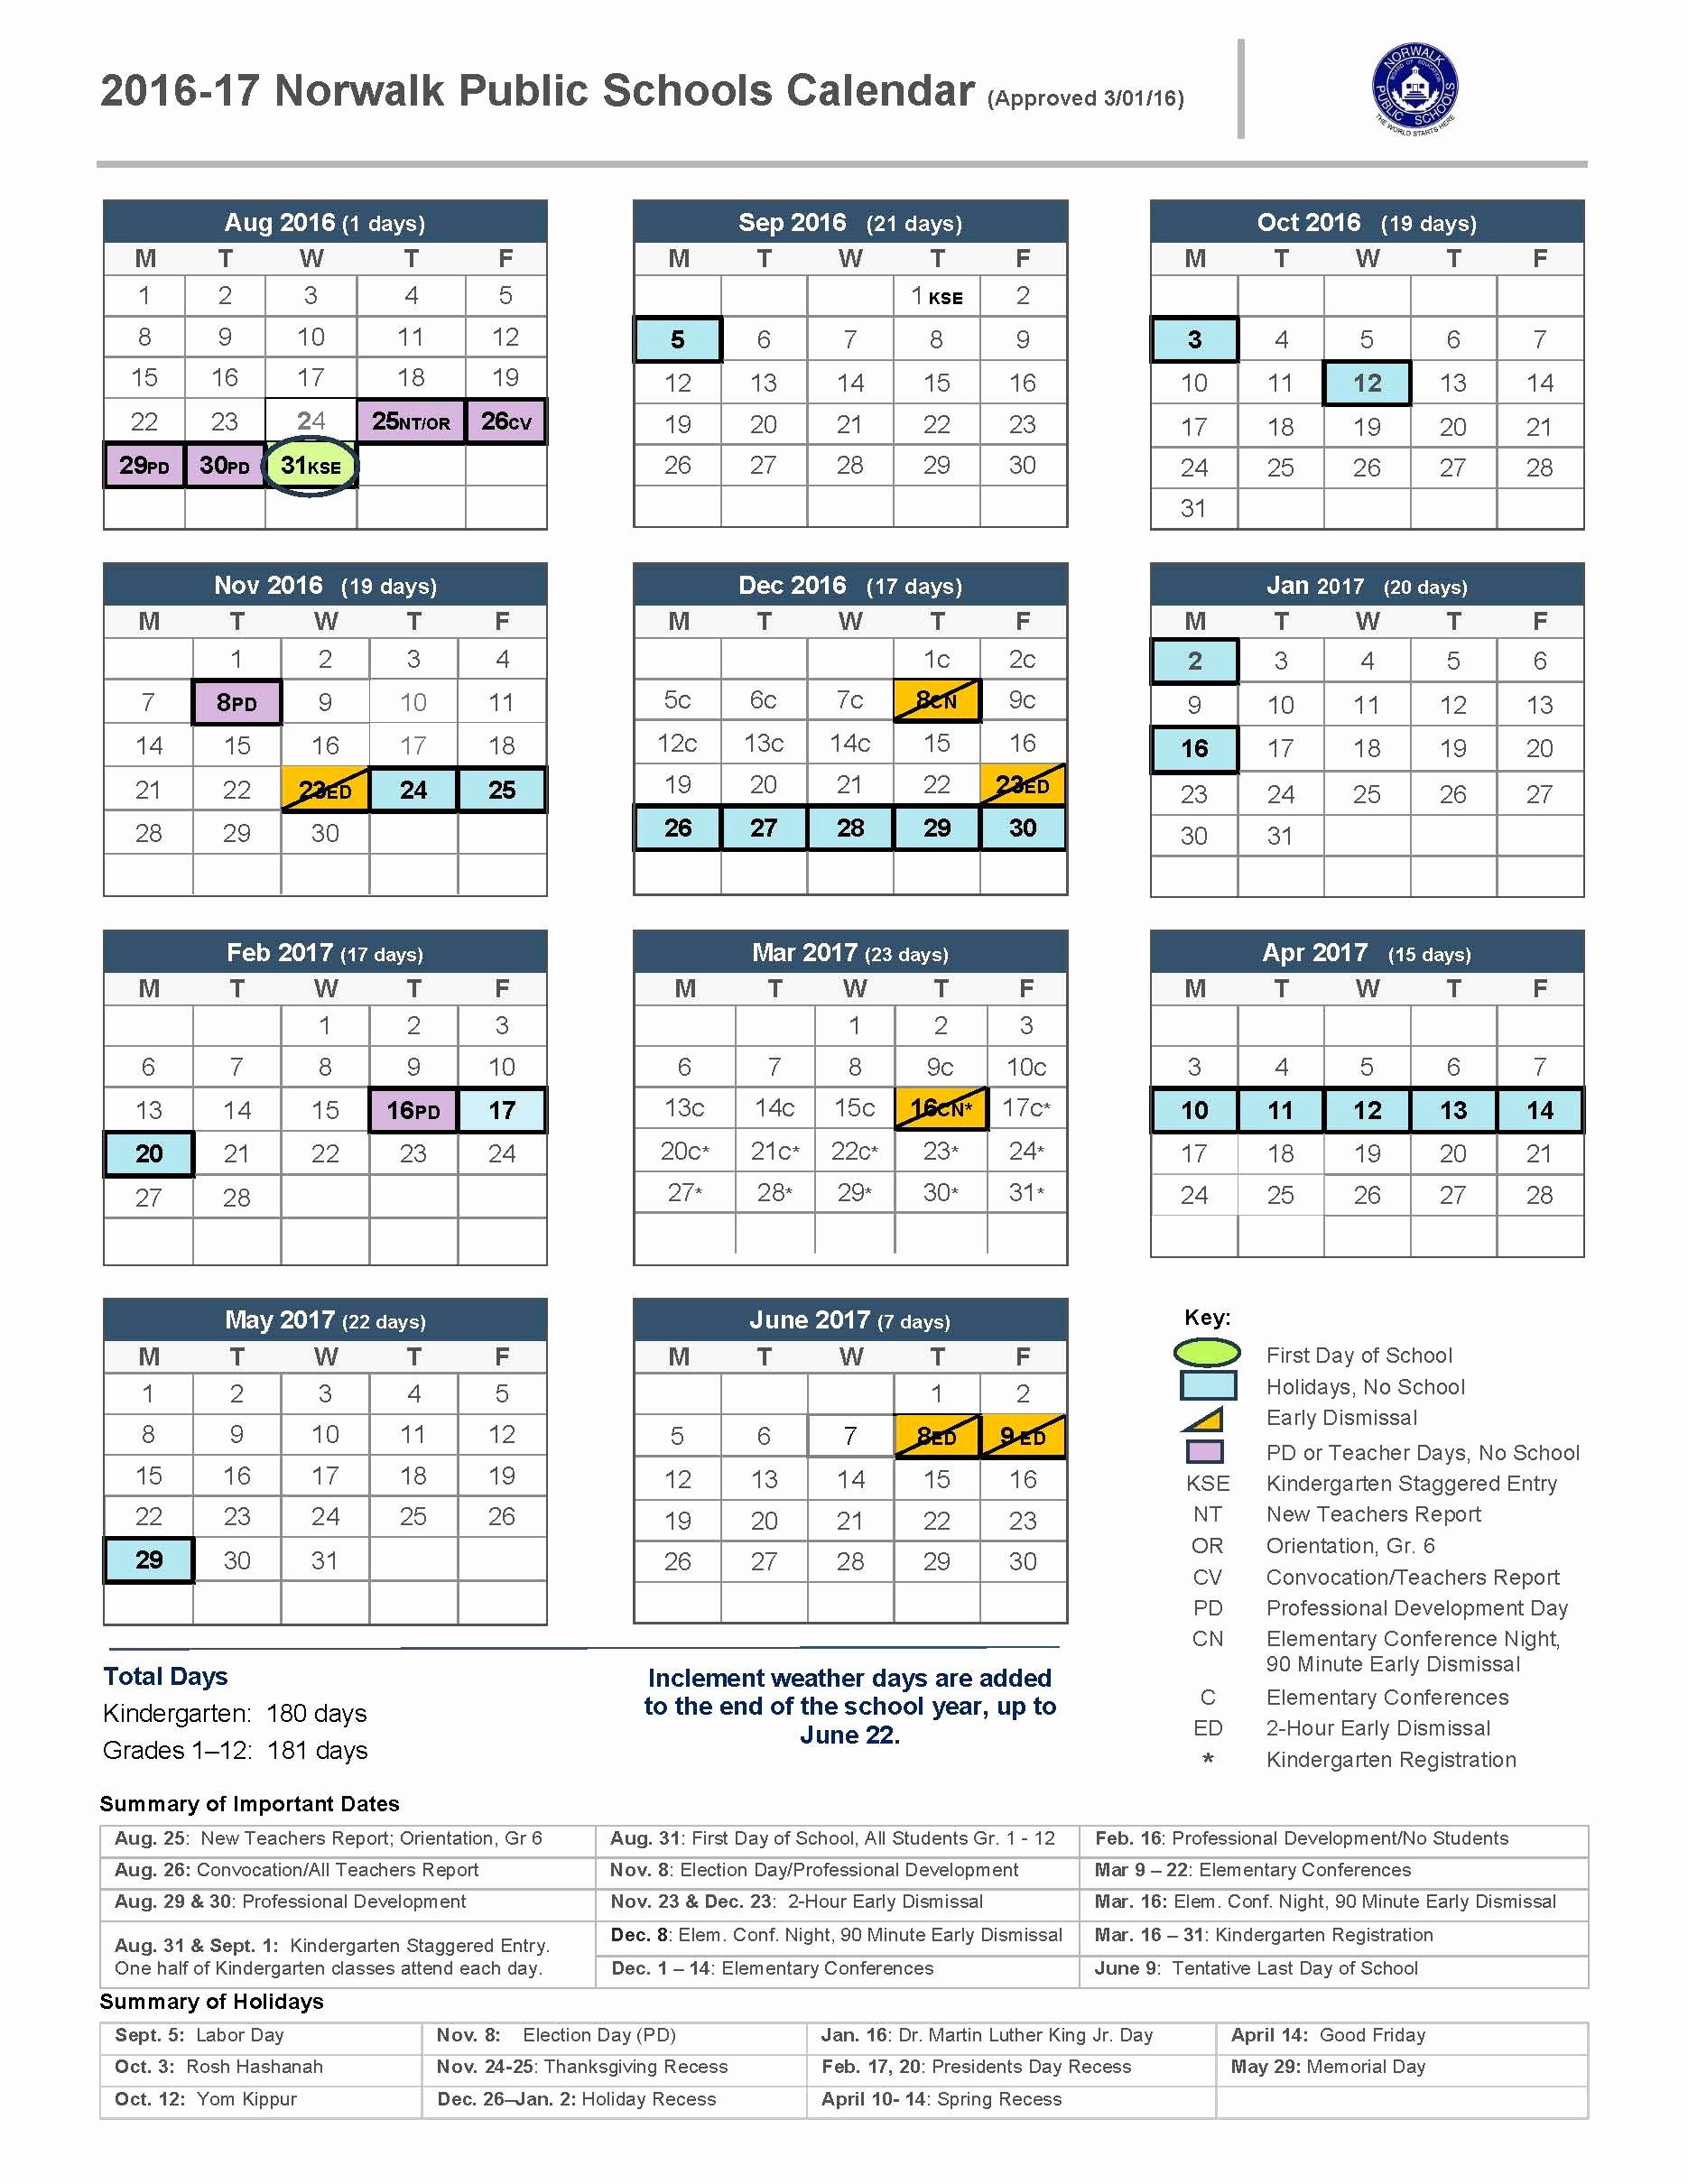 Editable Calendar 2016-17 Beautiful 2016 17 School Calendar norwalk Public Schools